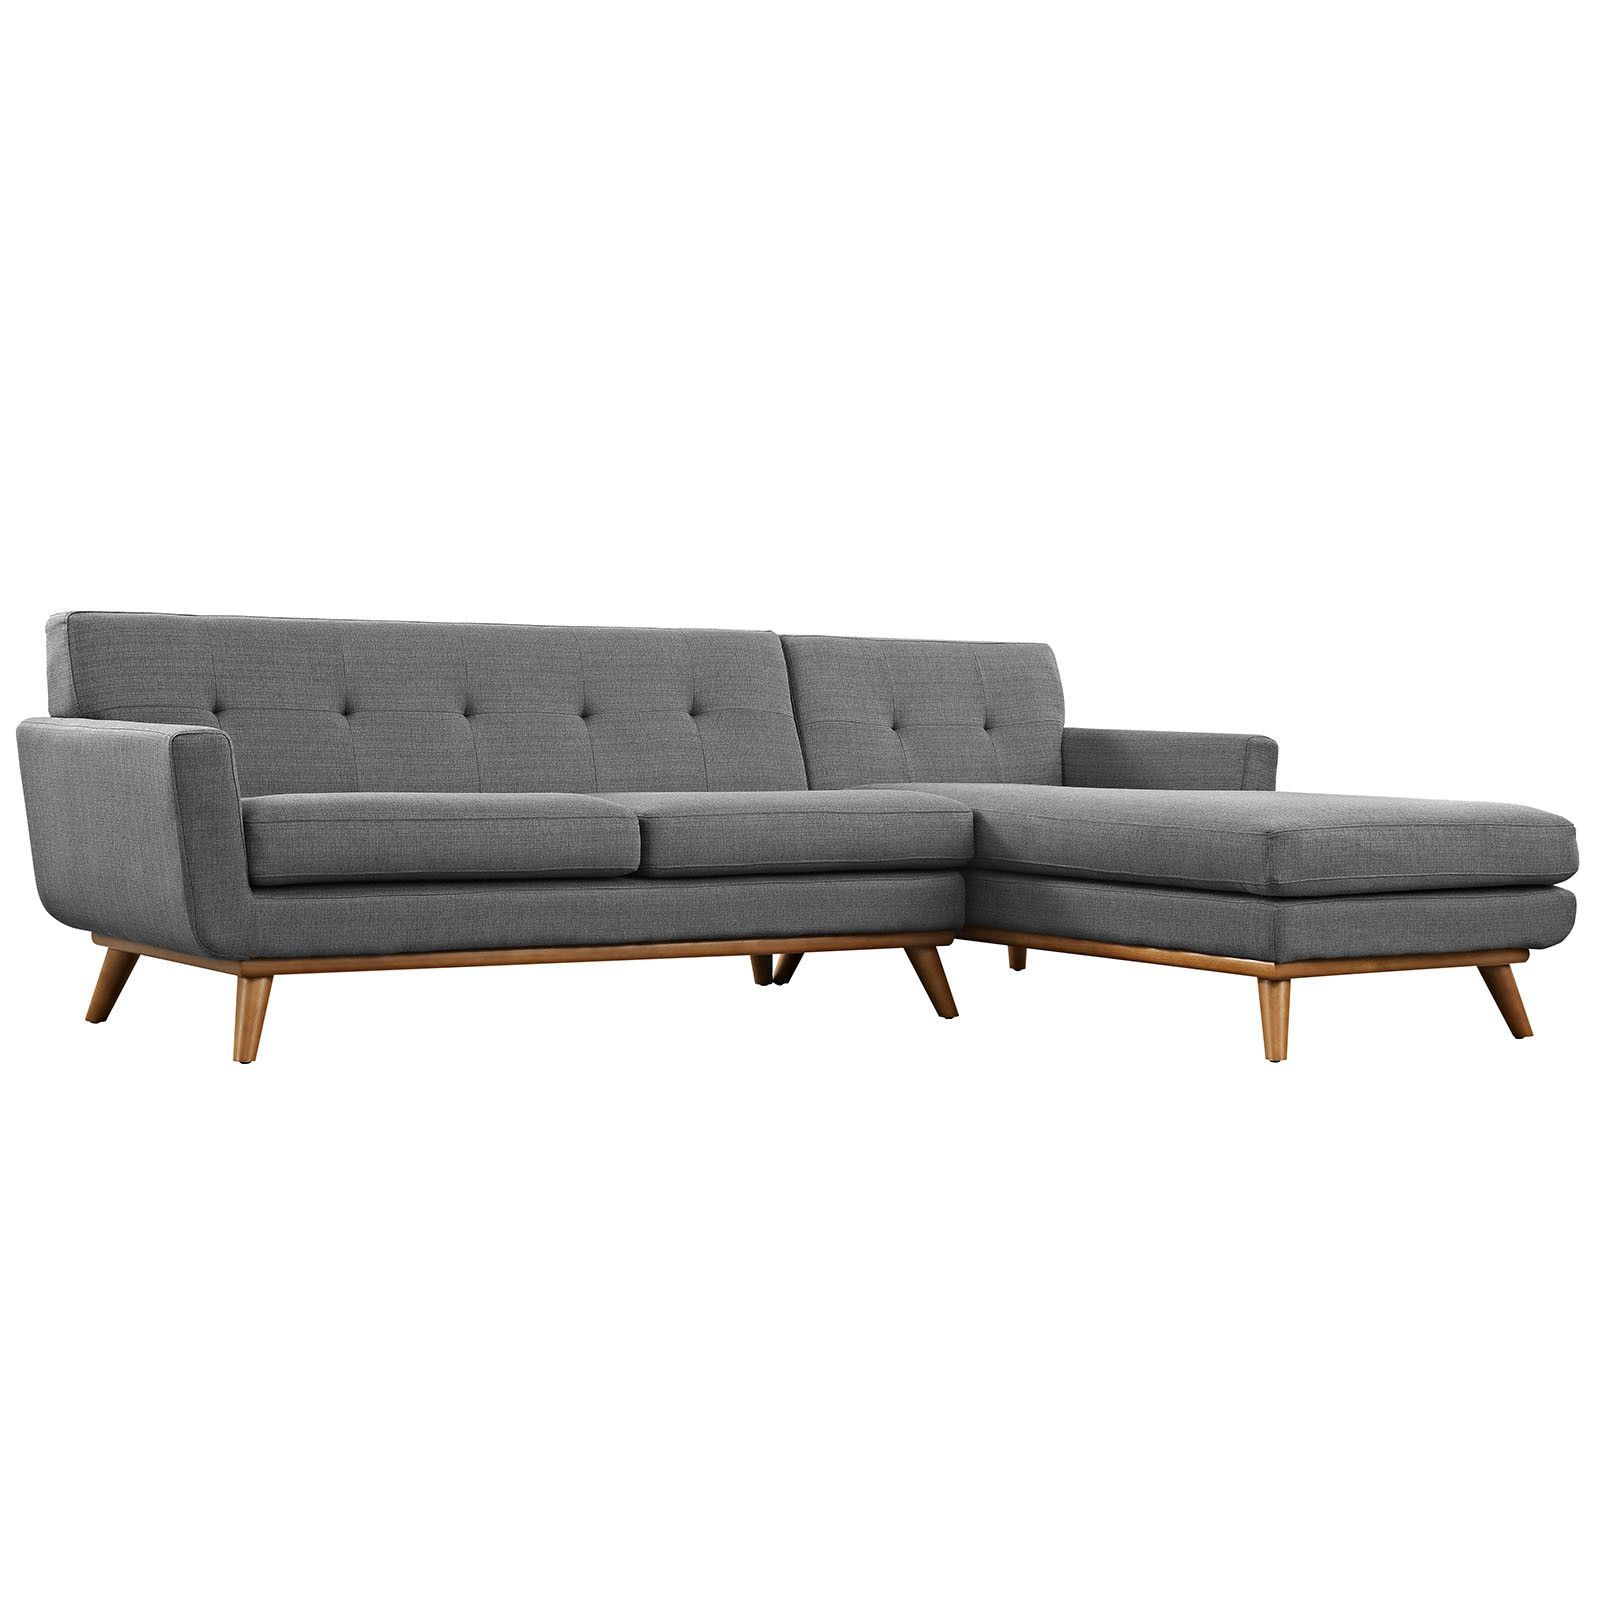 Engage Right Facing Sectional Sofa at Harvey & Haley for only